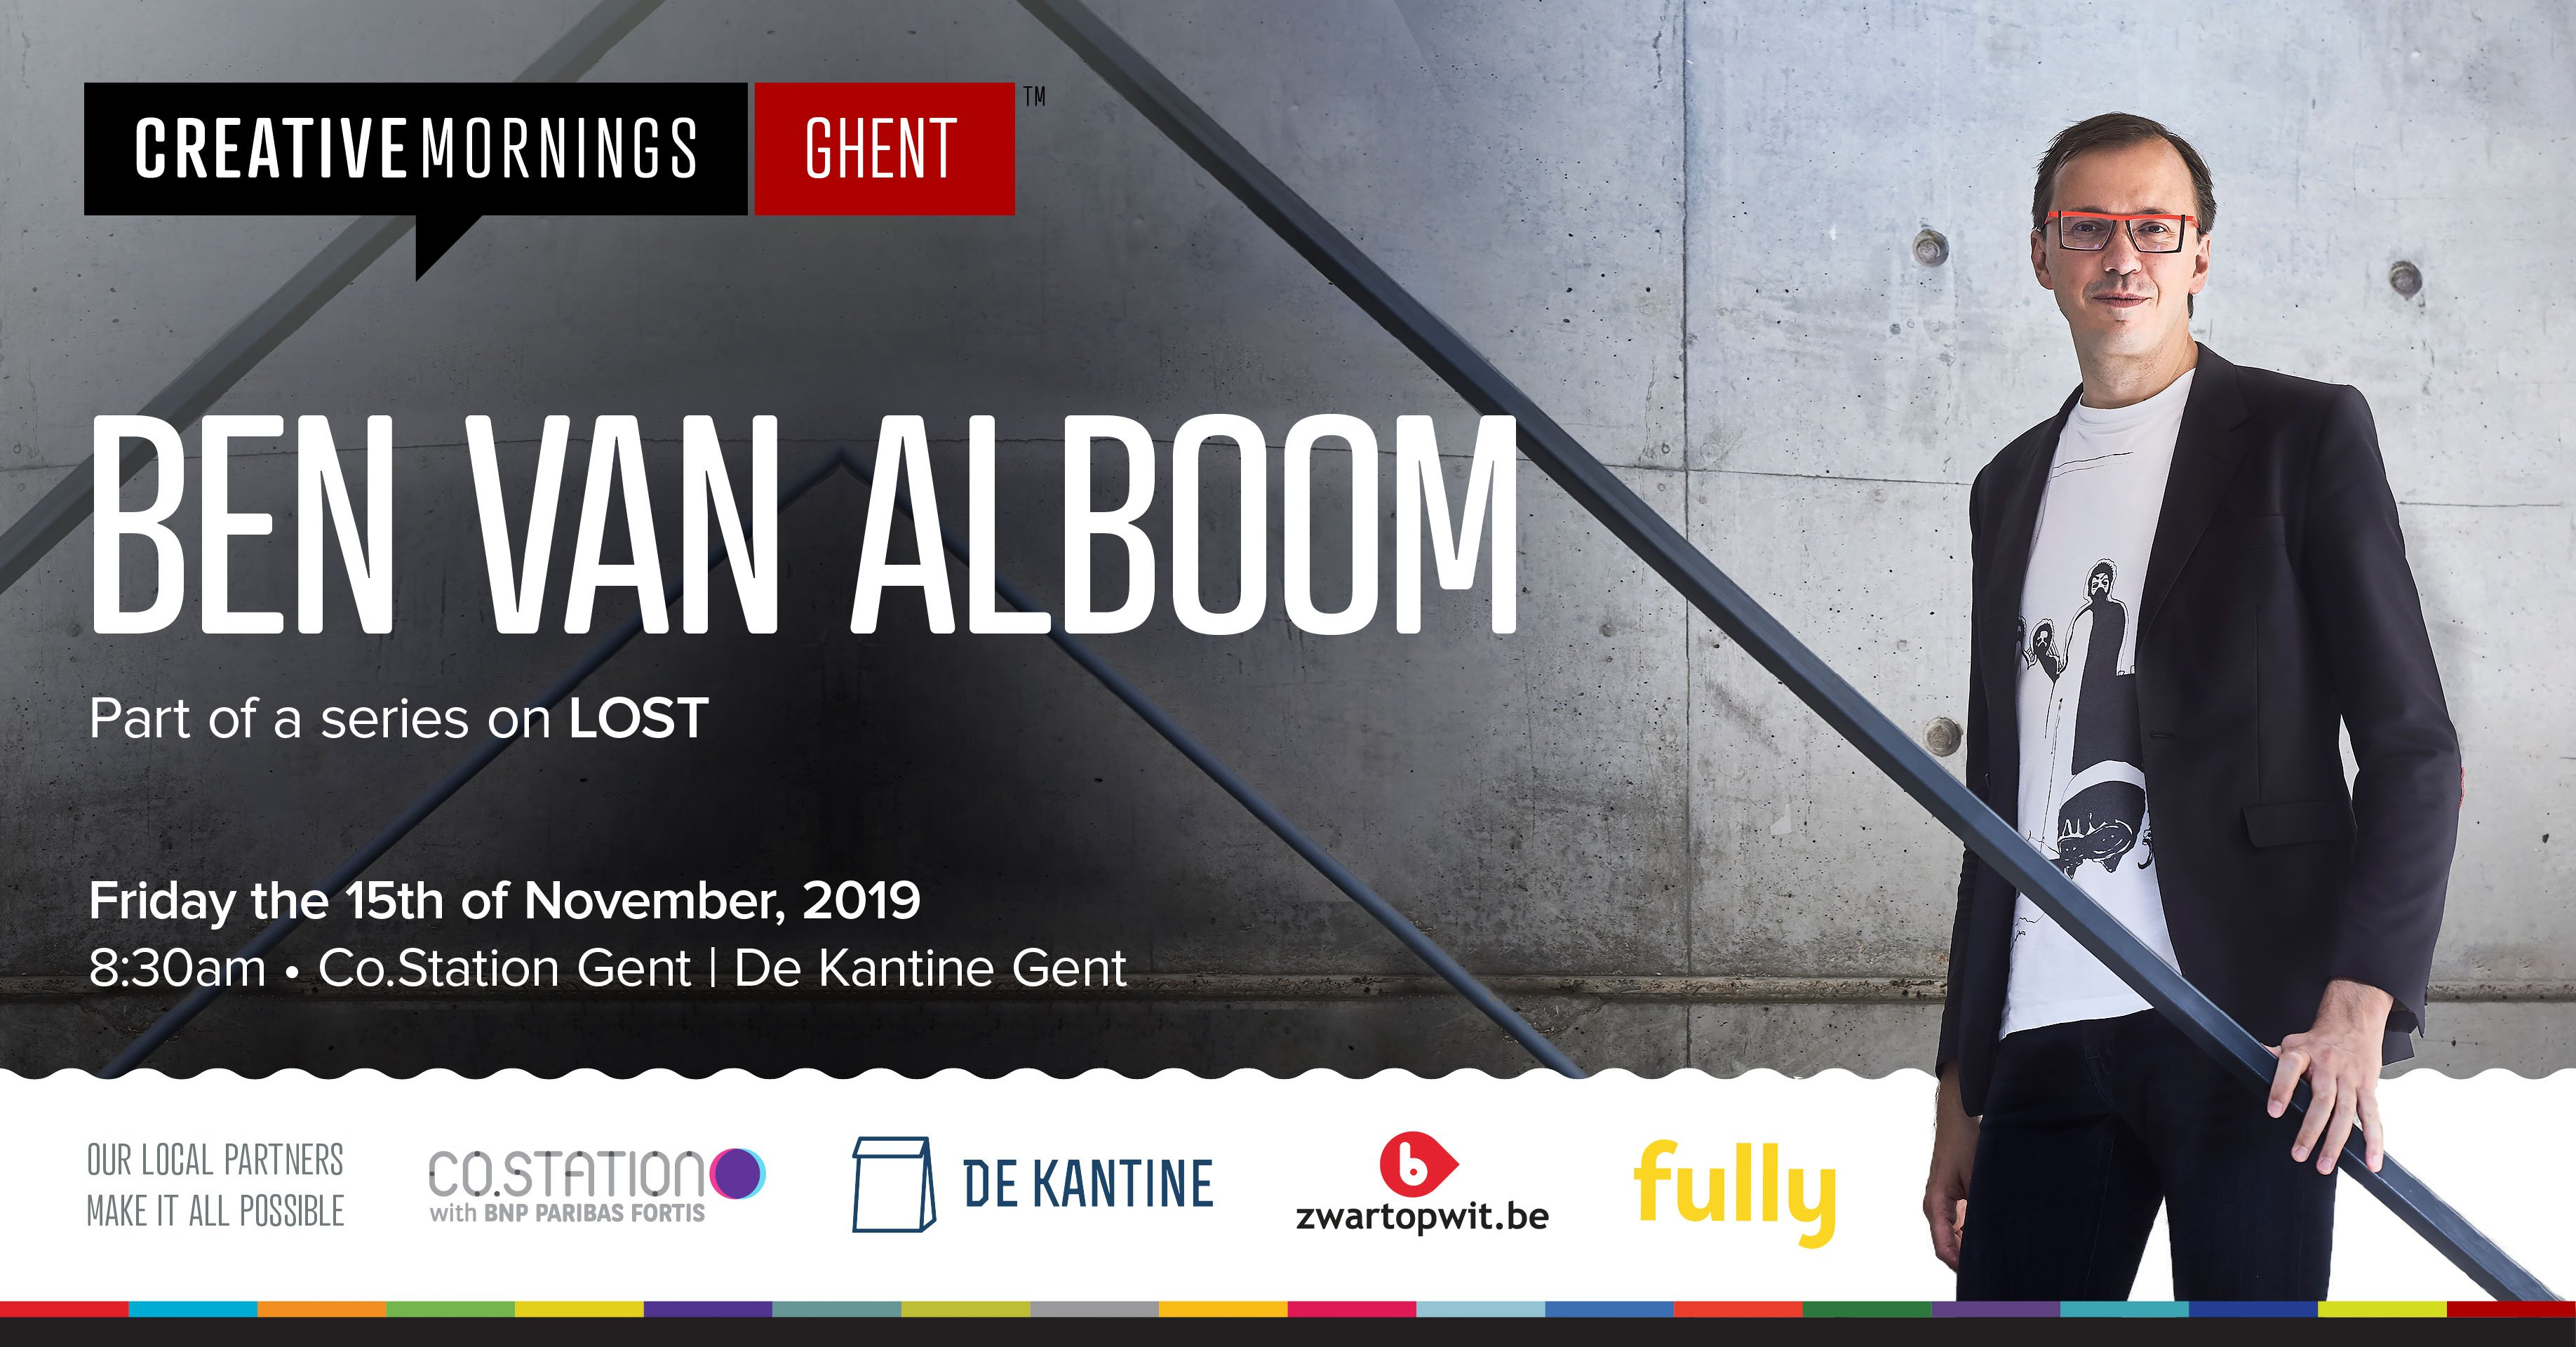 Co.Station Events | CreativeMornings/Ghent: Lost with Ben Van Alboom